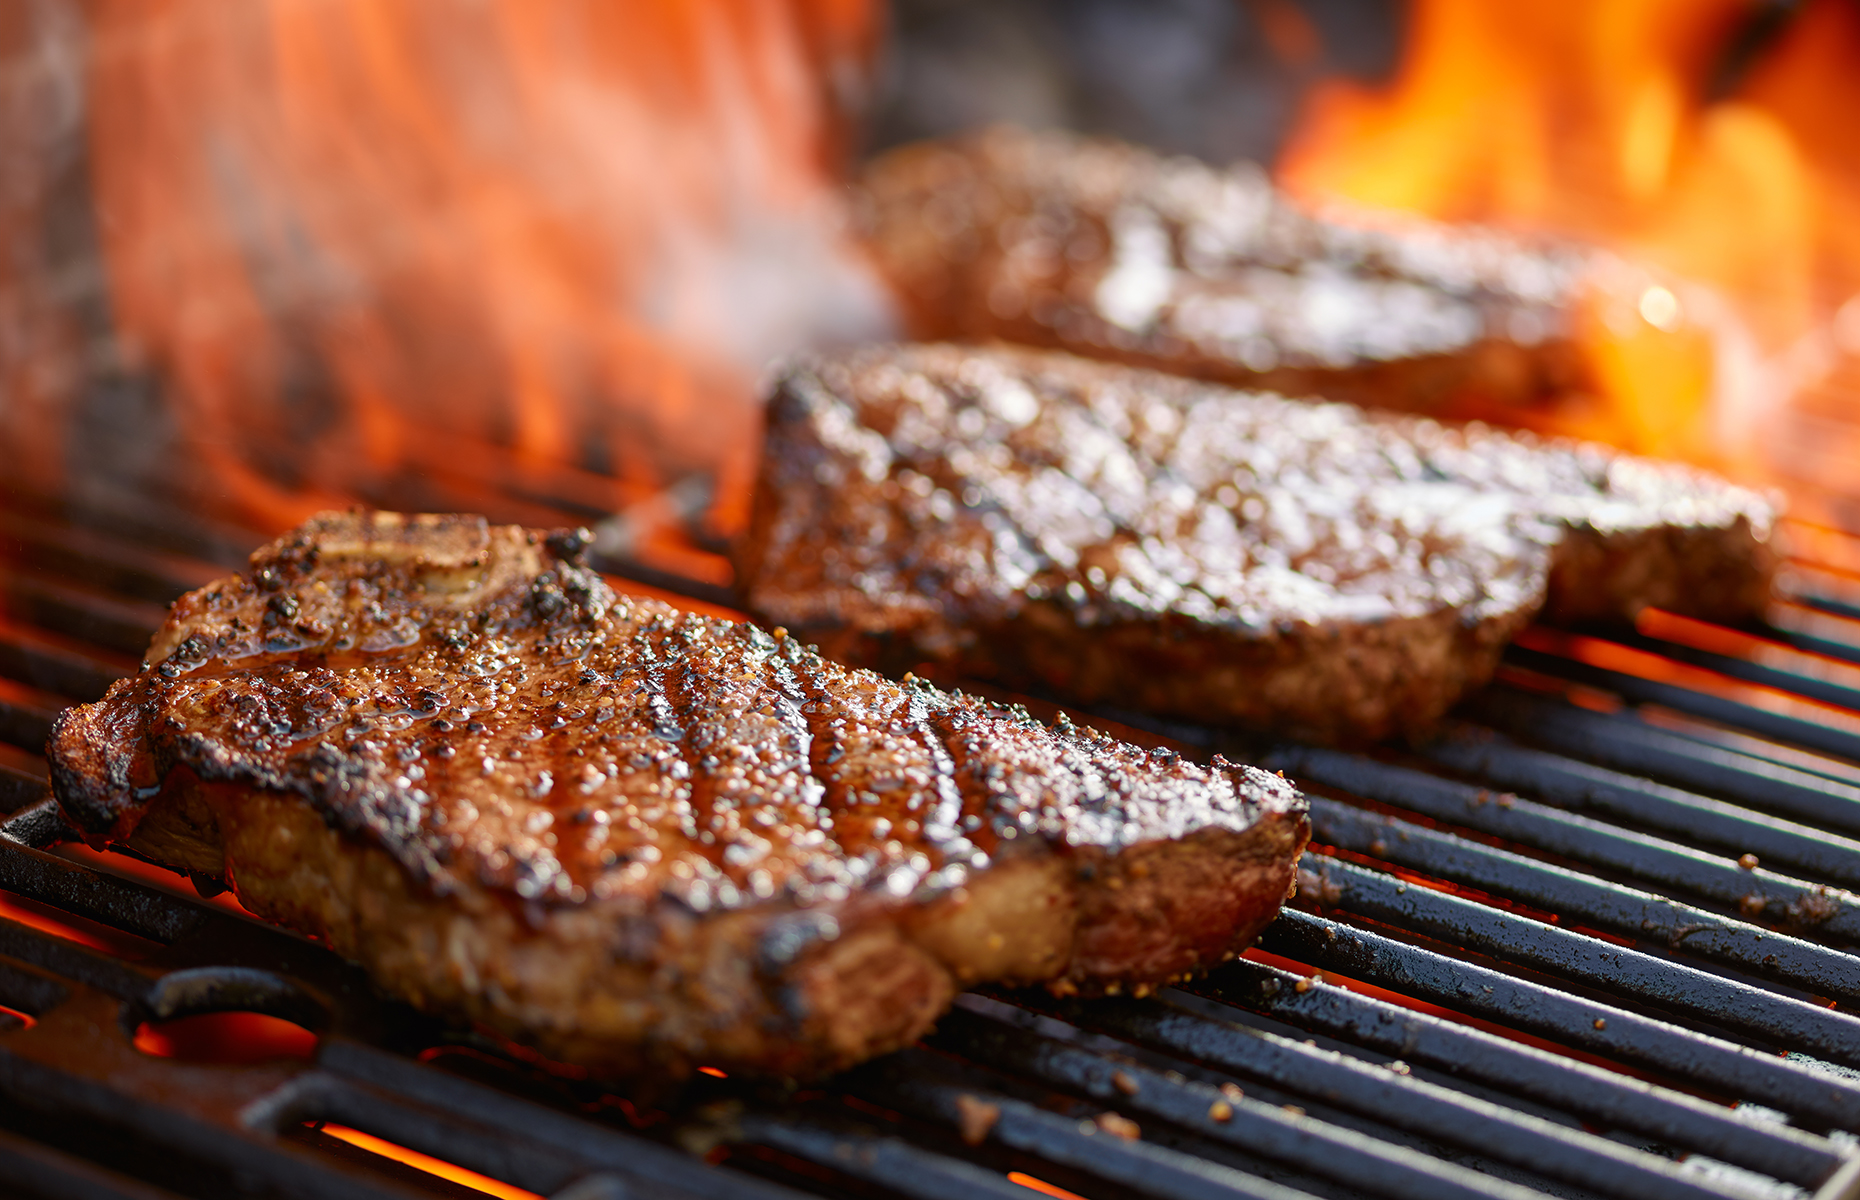 Barbecue tips and hacks (Image: Joshua Resnick/Shutterstock)